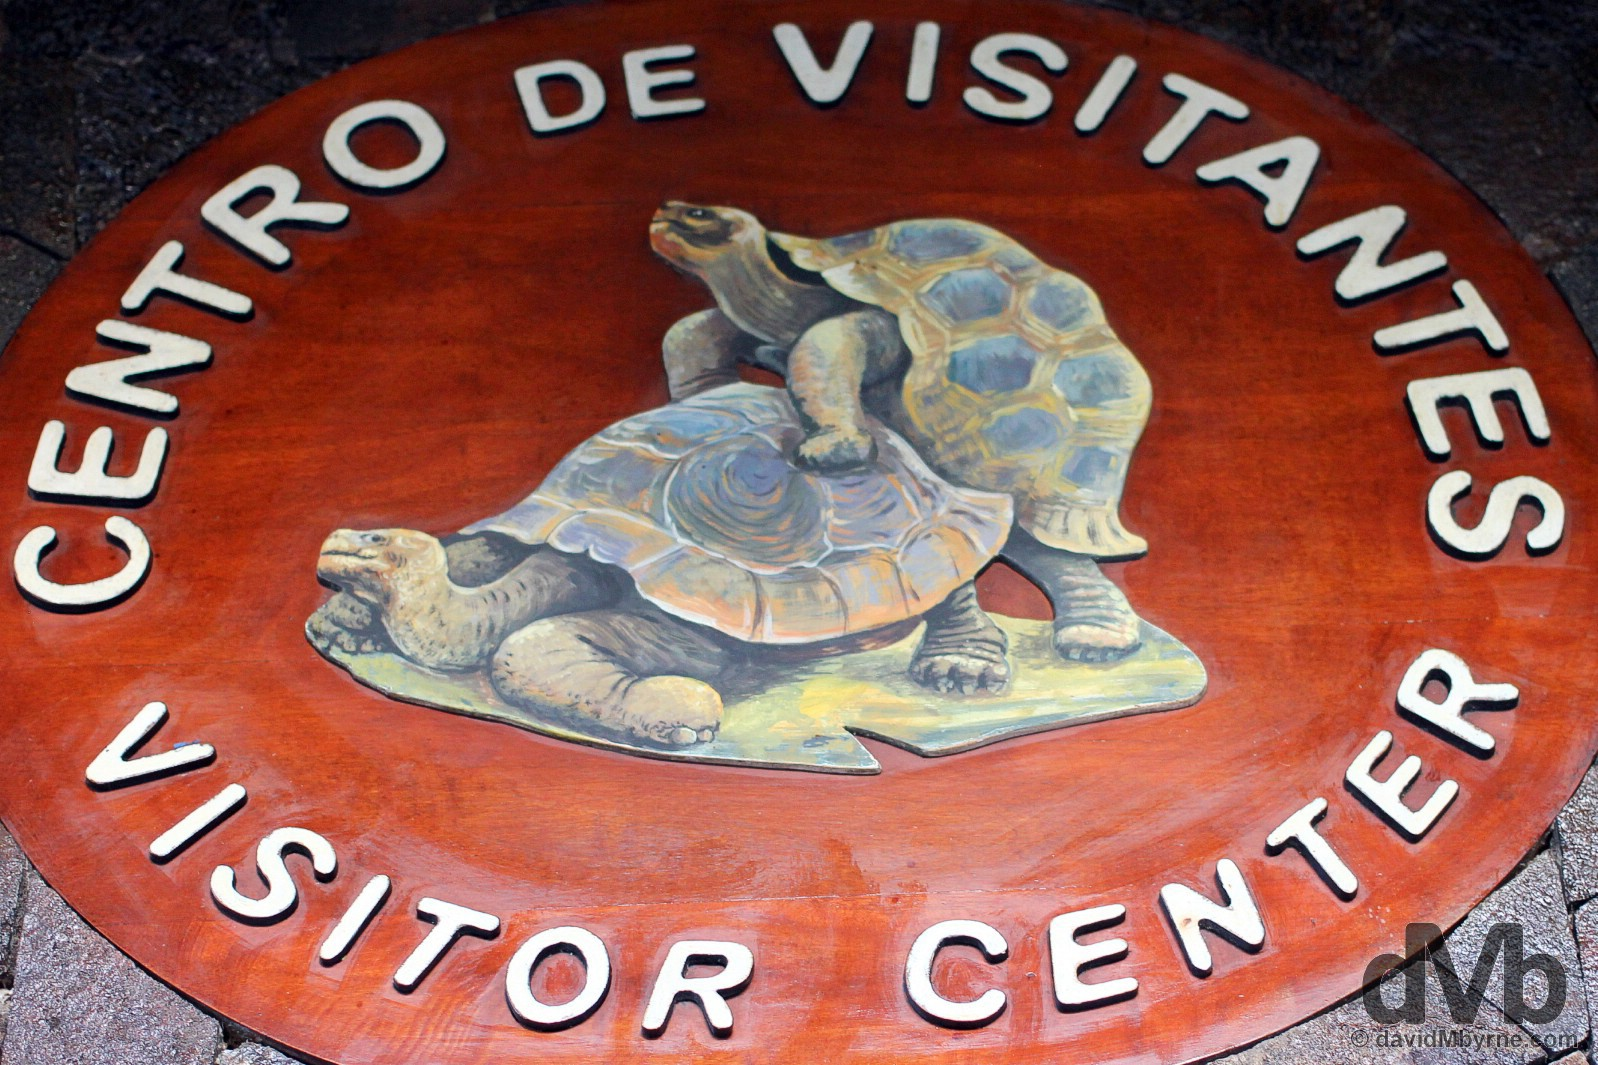 Visitor Center of the Tortoise Breeding Centre on Isla Isabela, Galapagos, Ecuador. July 19, 2015.